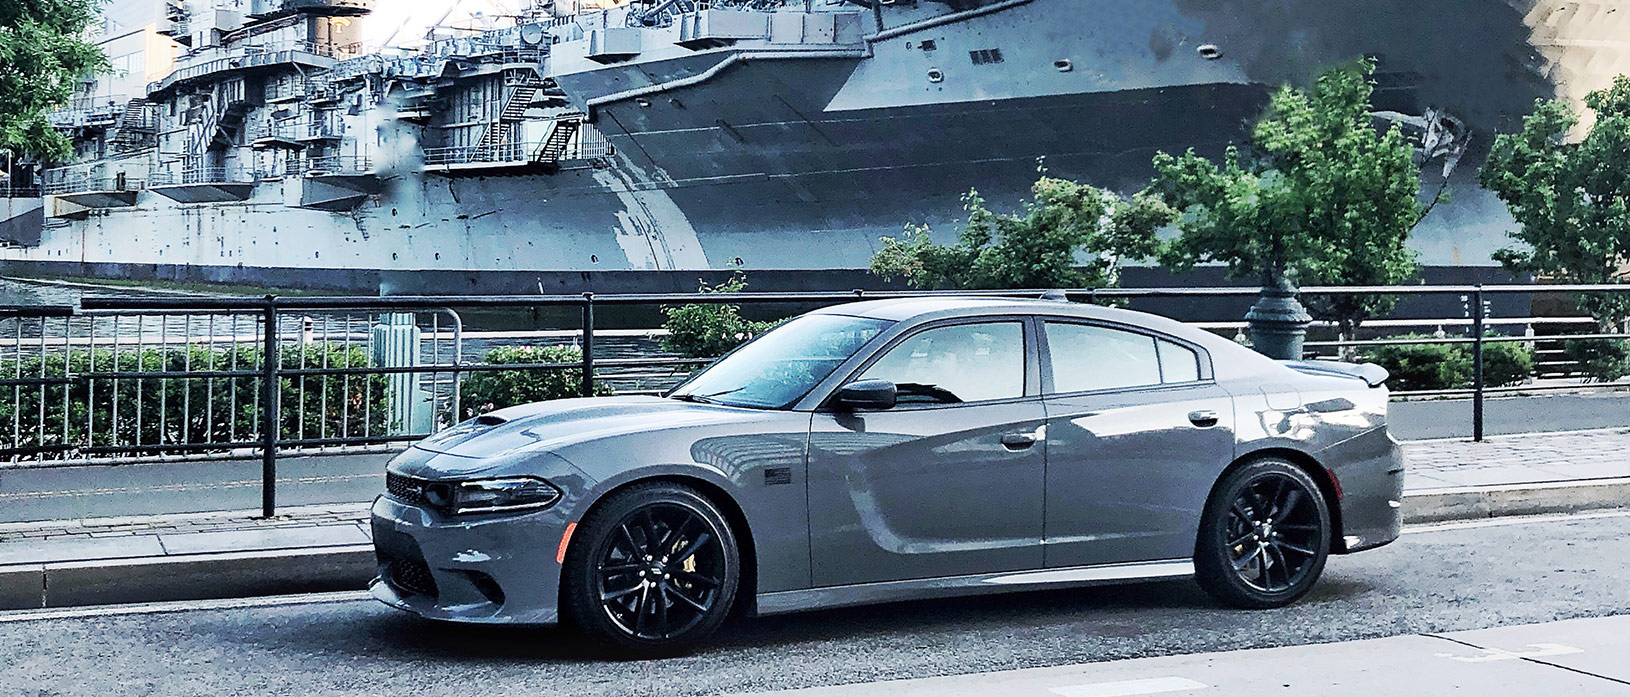 Destroyer Grey Charger infront of a Destroyer Grey ship.